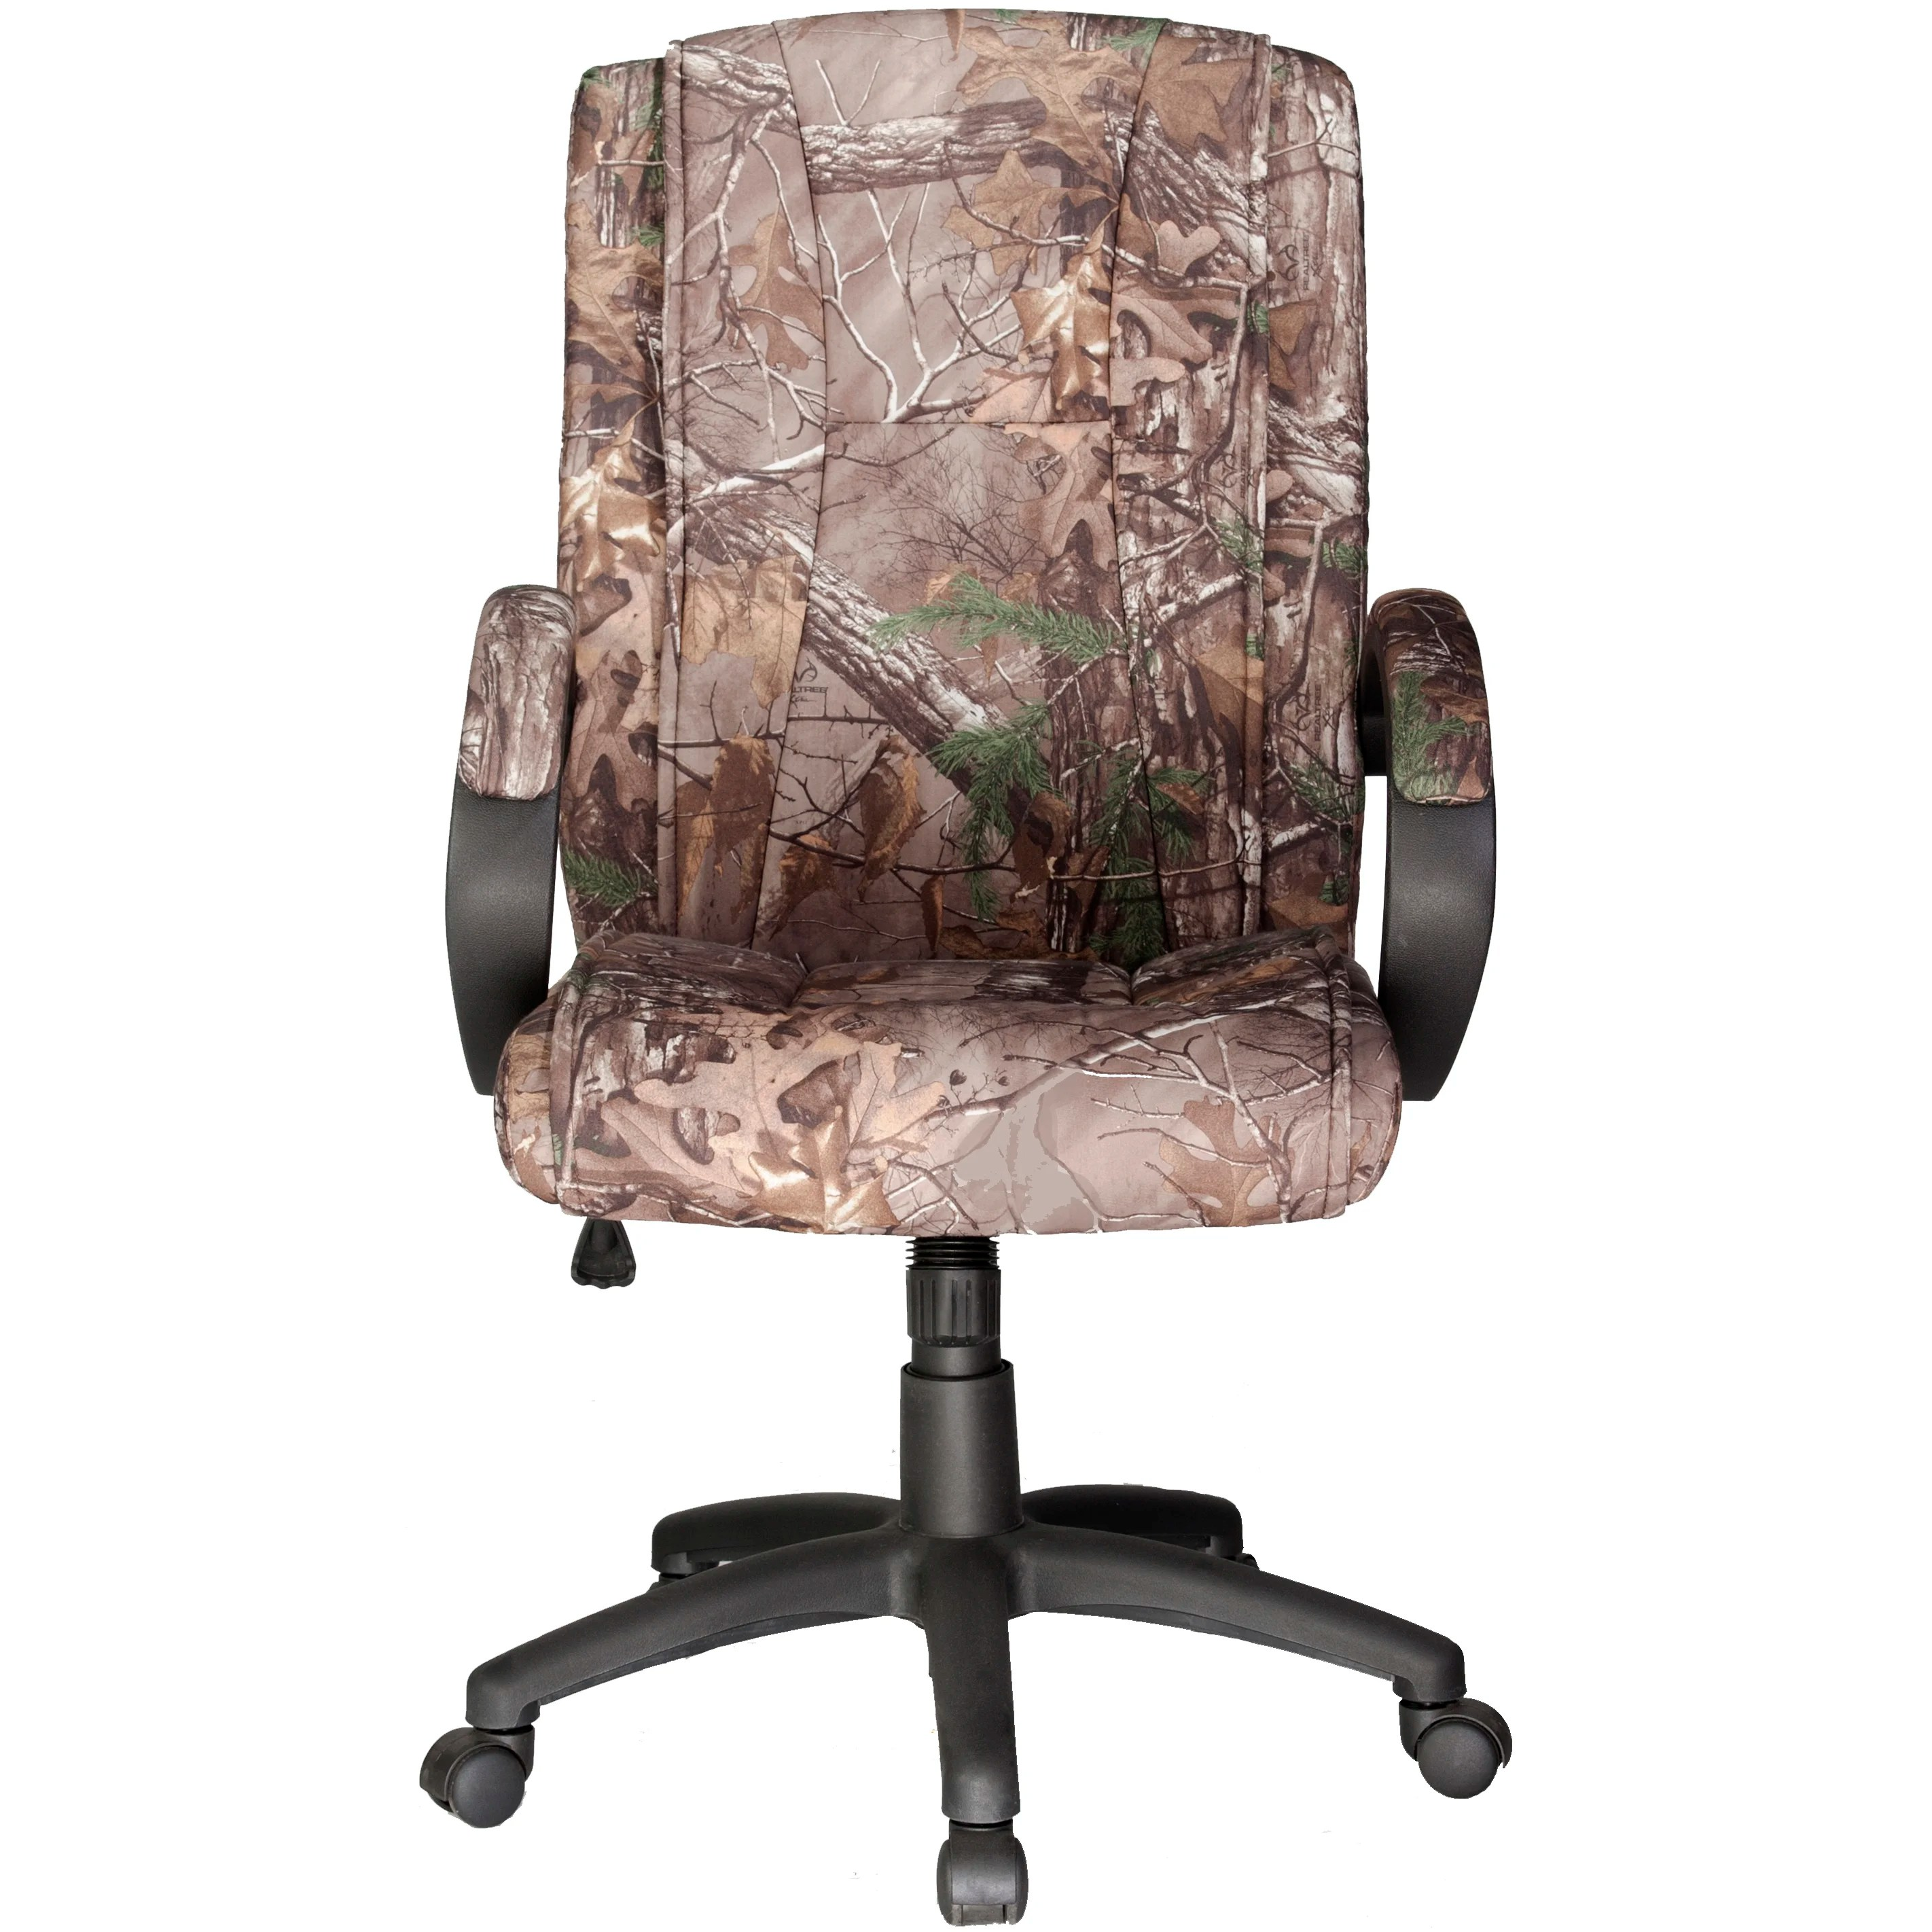 Realtree Chair Comfort Products Realtree Relaxzen Executive Chair